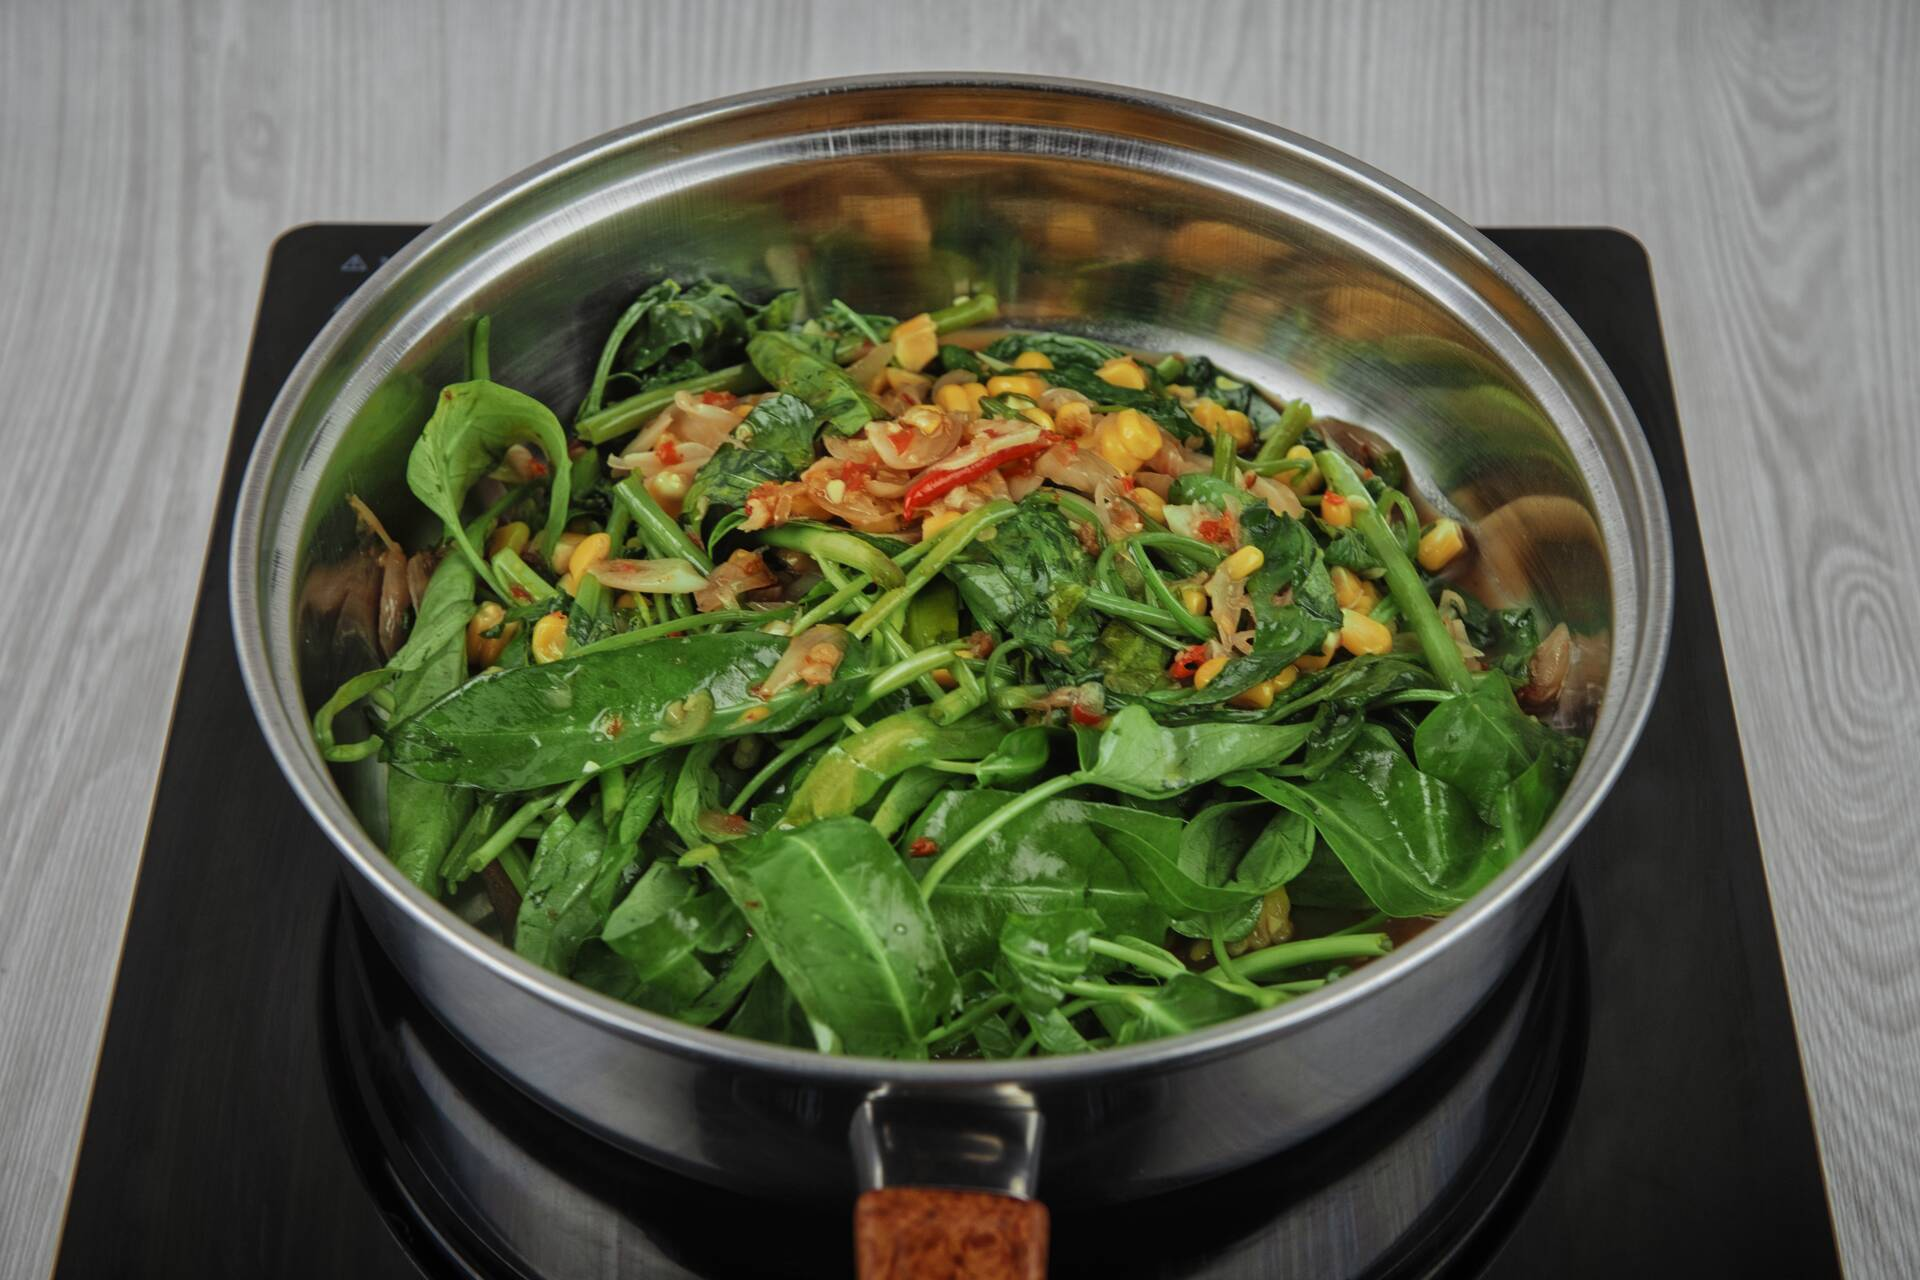 Add the water spinach and sweet corn